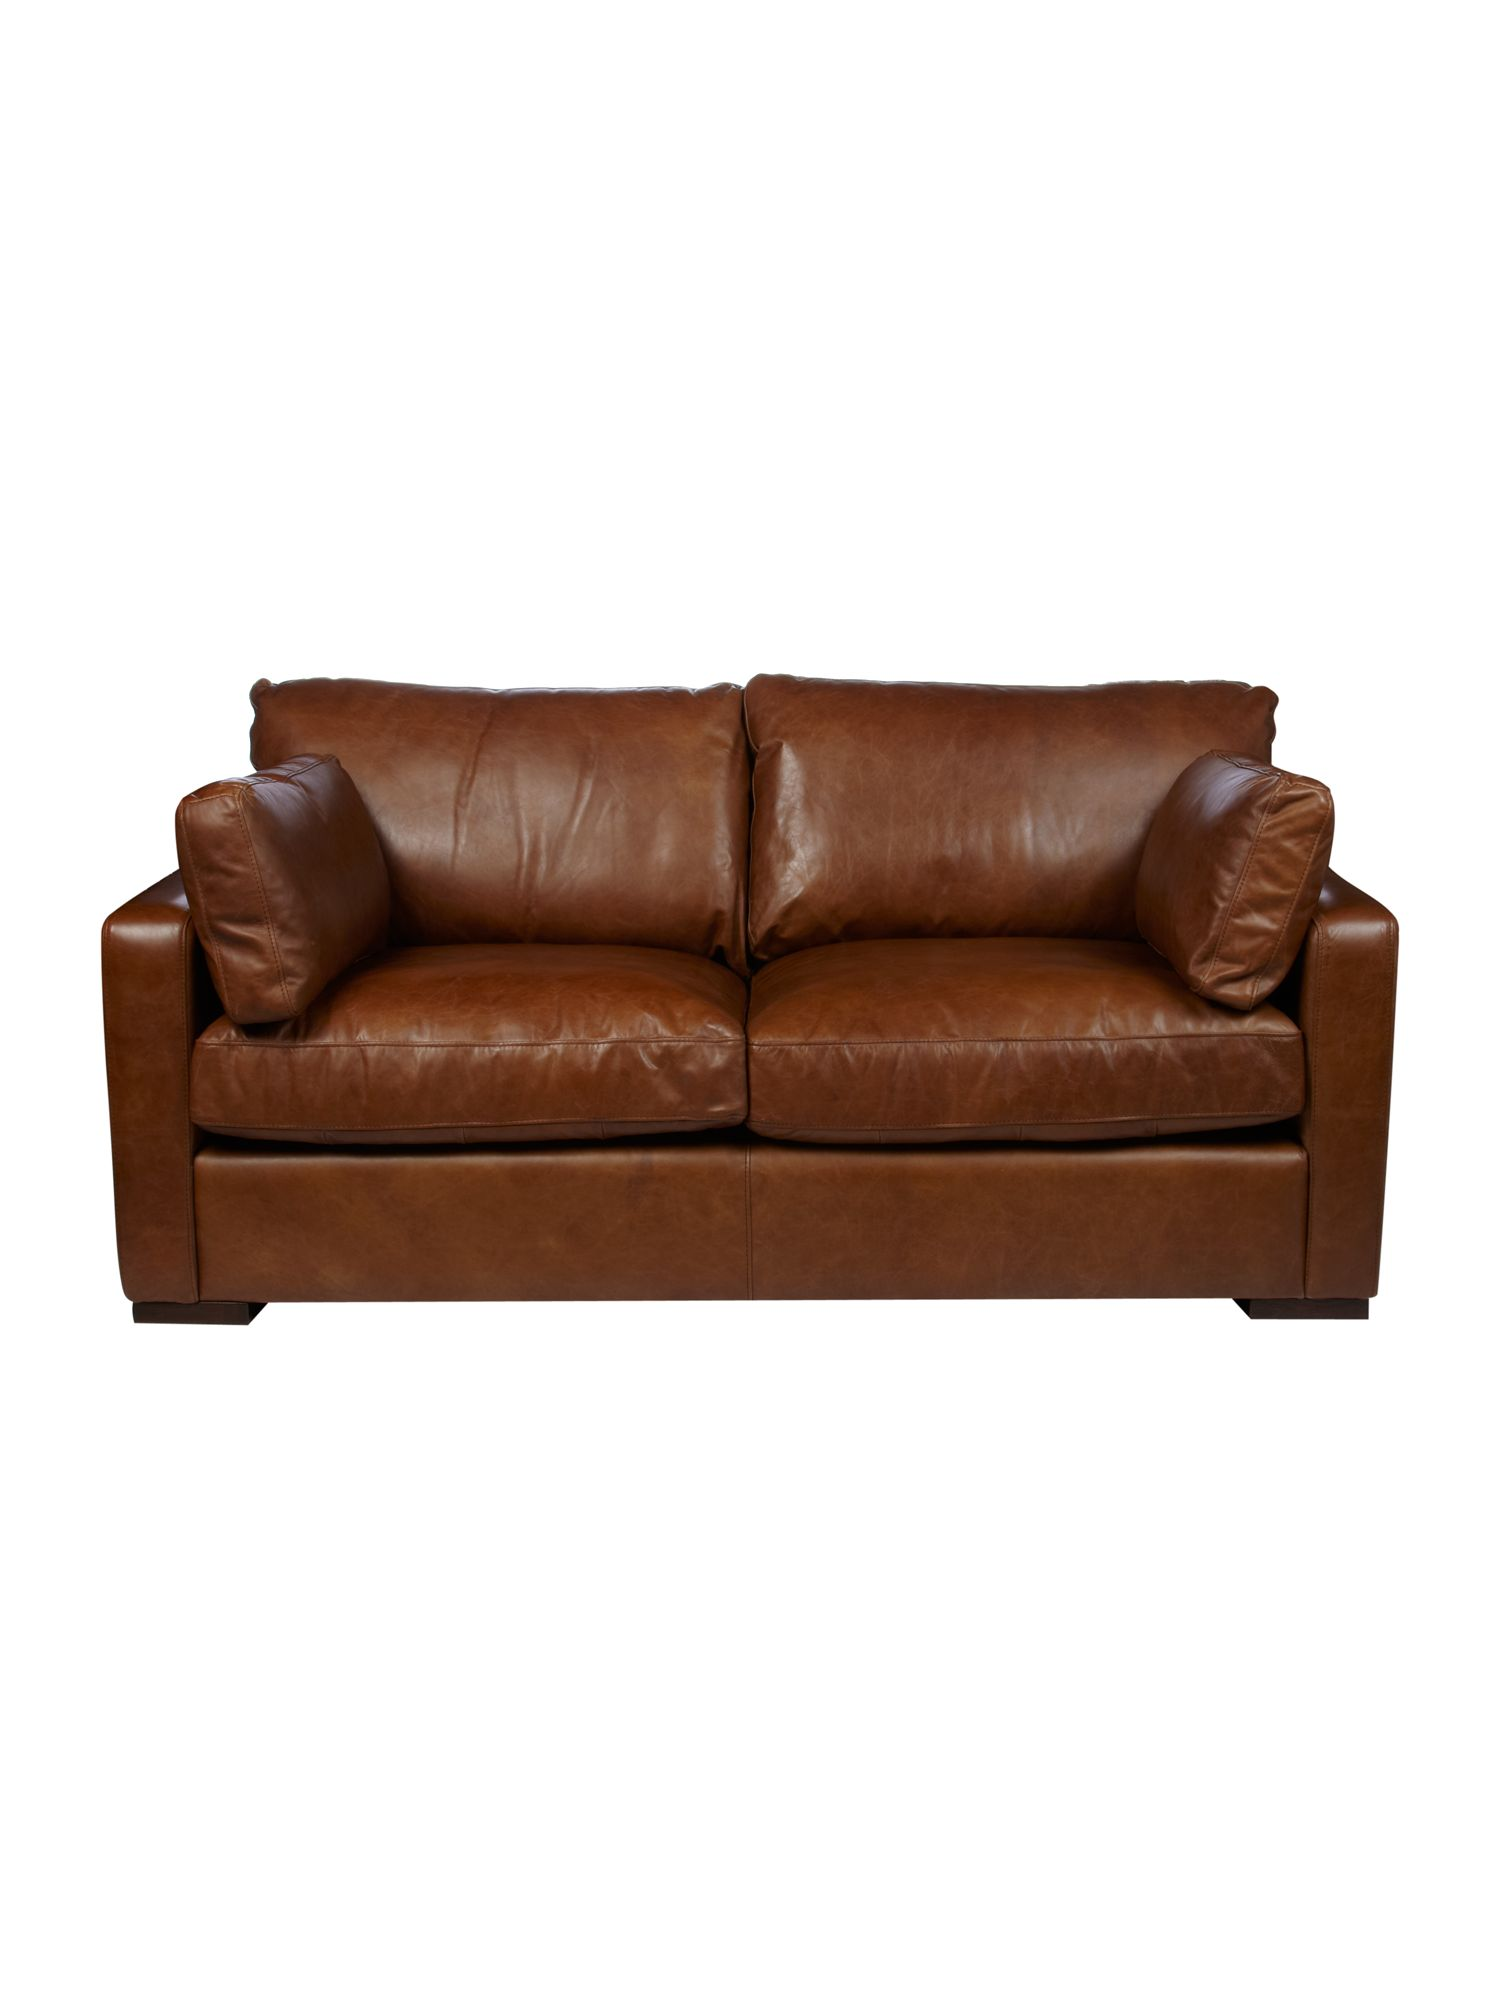 Idaho medium 2 seater sofa light brown